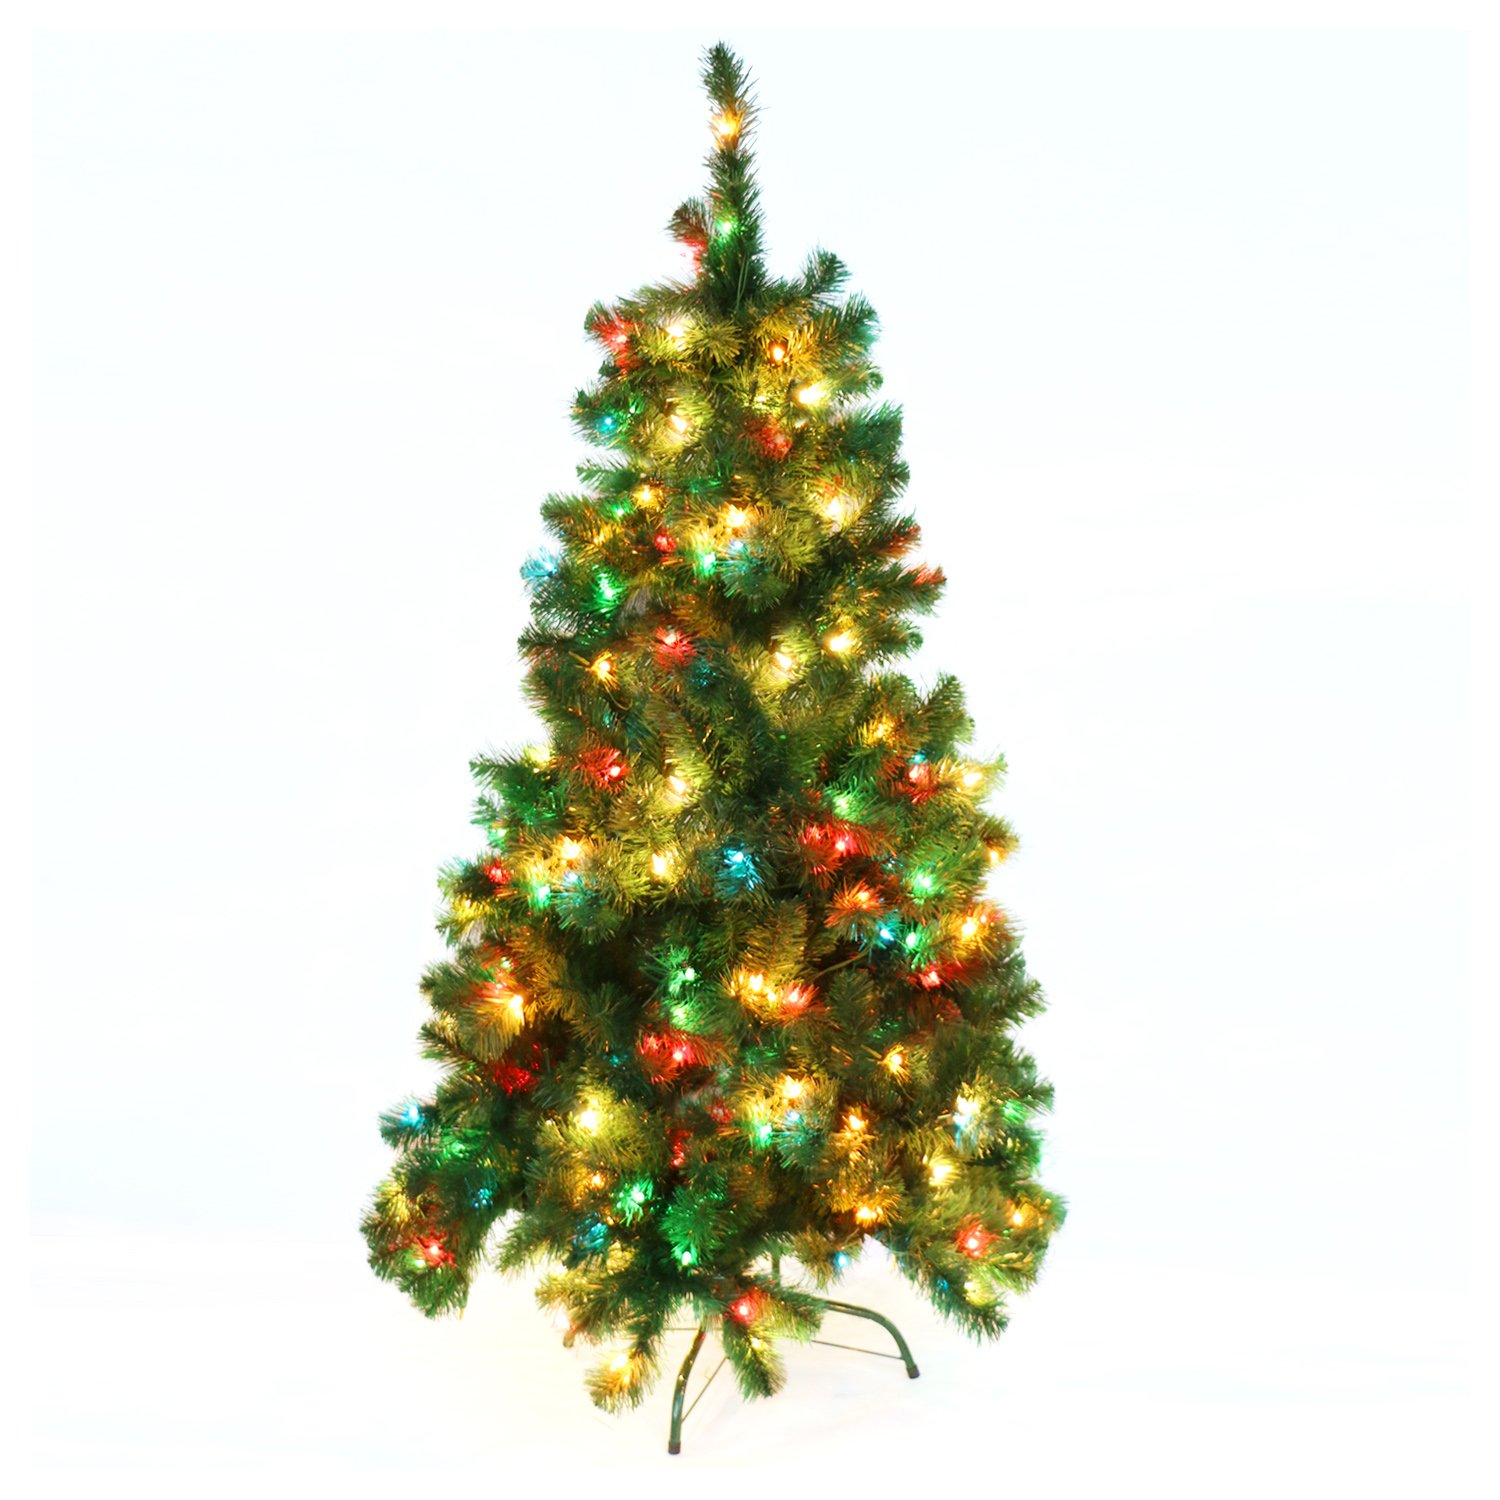 Amazoncom Casa Clausi Christmas Tree 4 Feet Pre Lit Multi Colored Lights